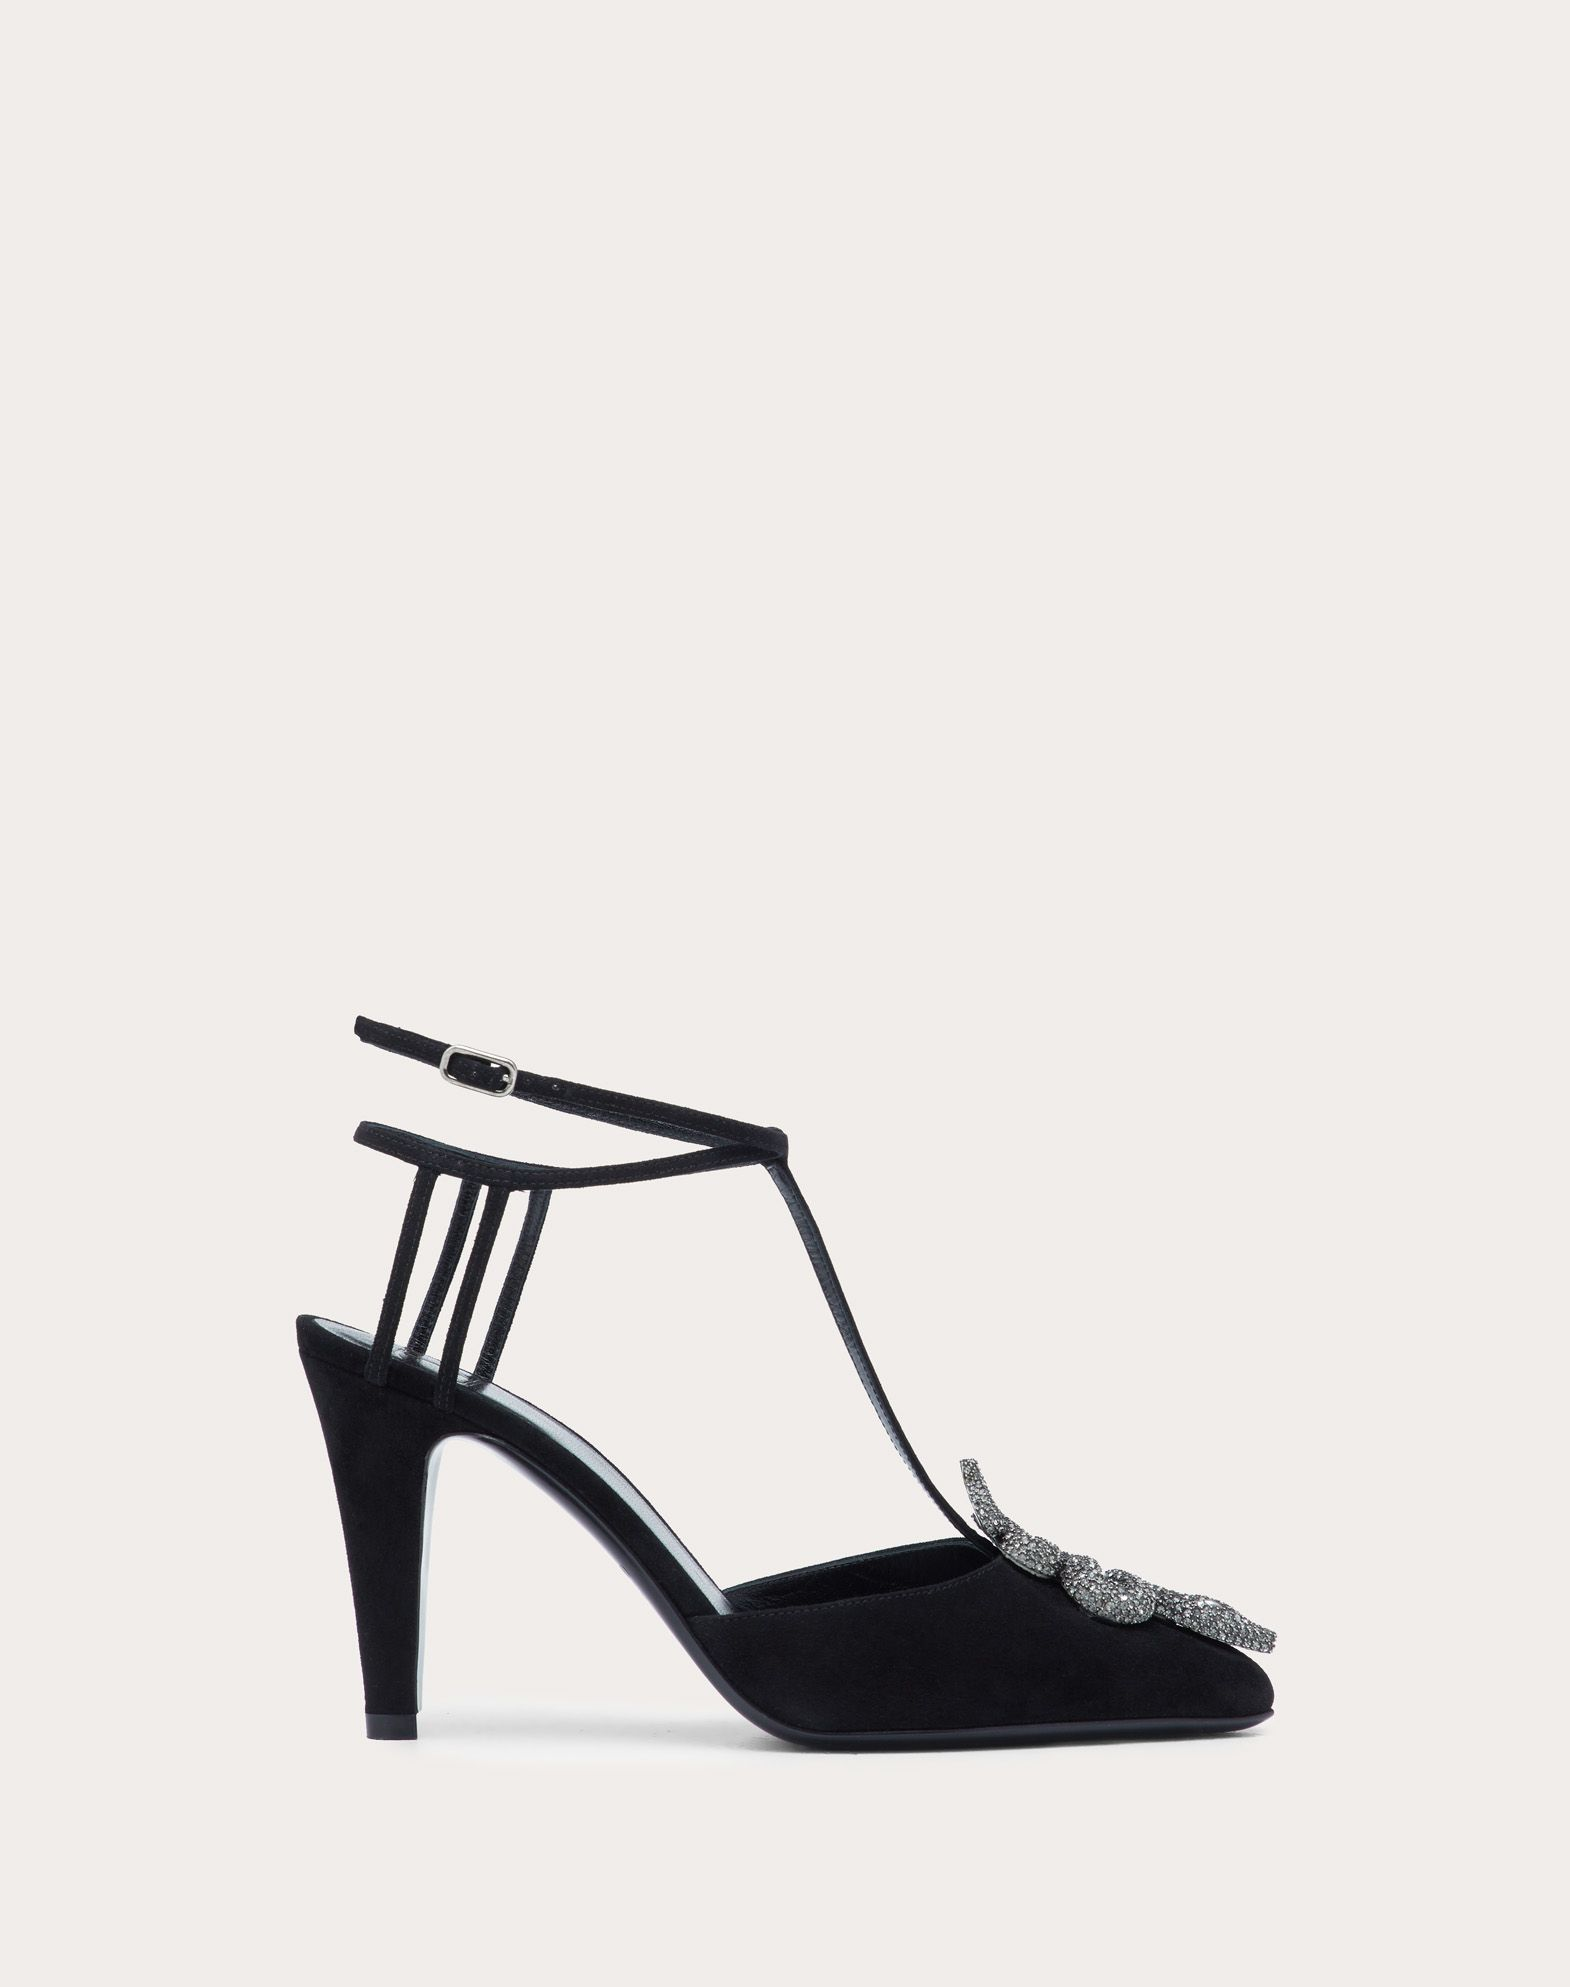 Serpent Suede Pump with Straps 90 mm